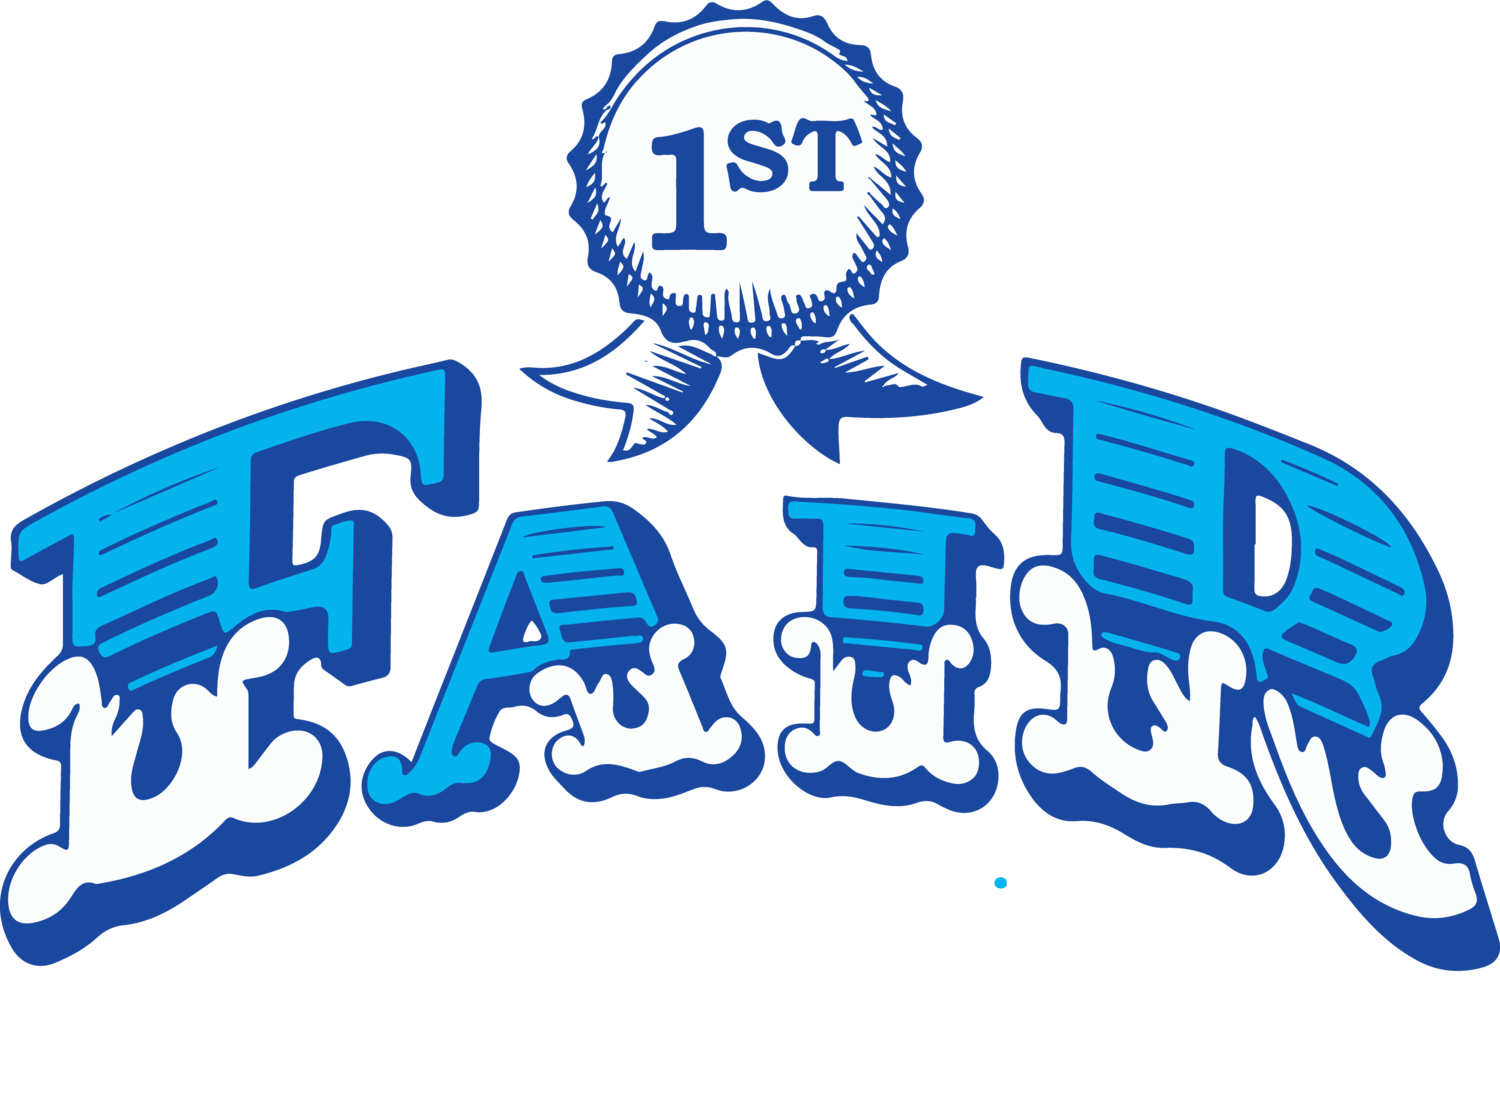 2021 Hardin County Fair and Horse Show